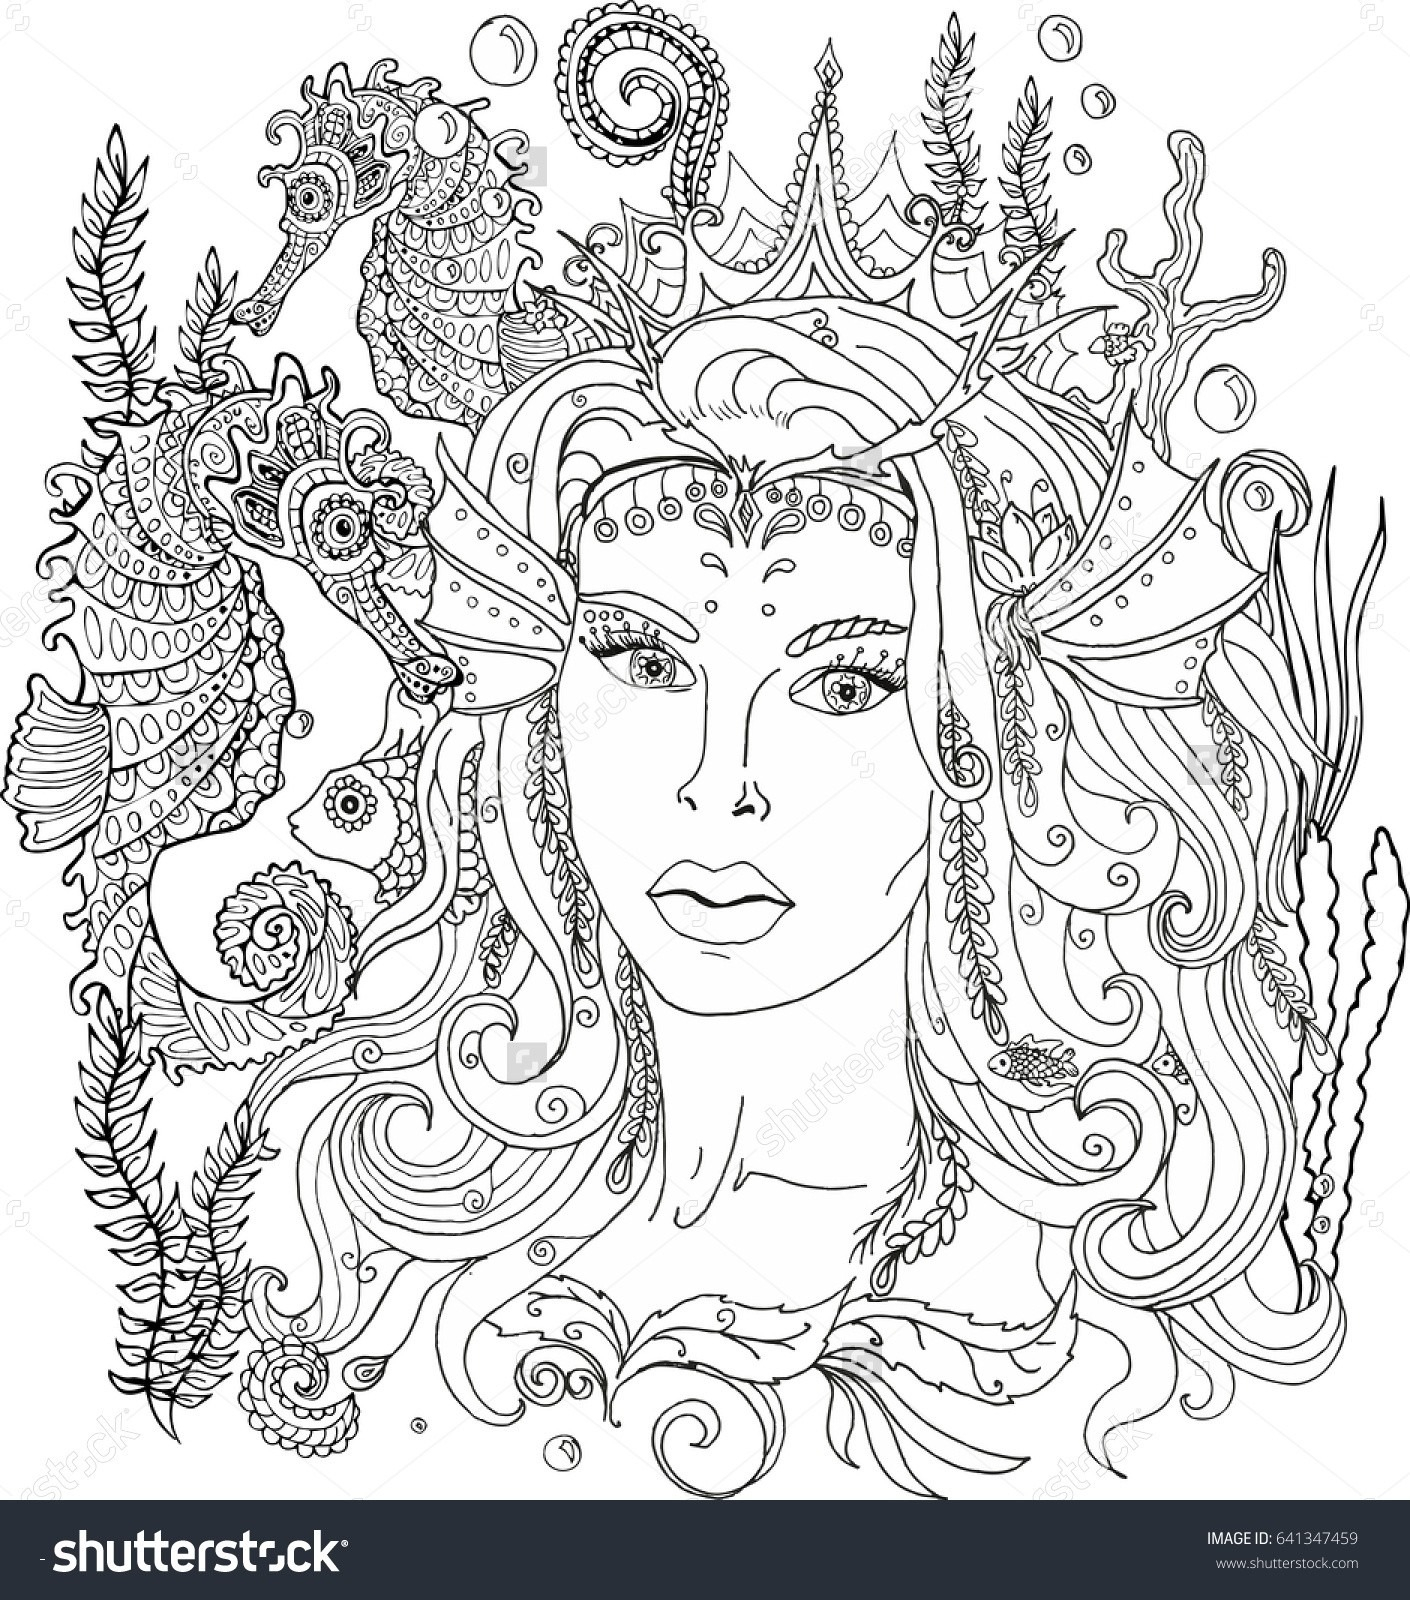 Free Little Mermaid Coloring Pages  Download 20h - Free Download